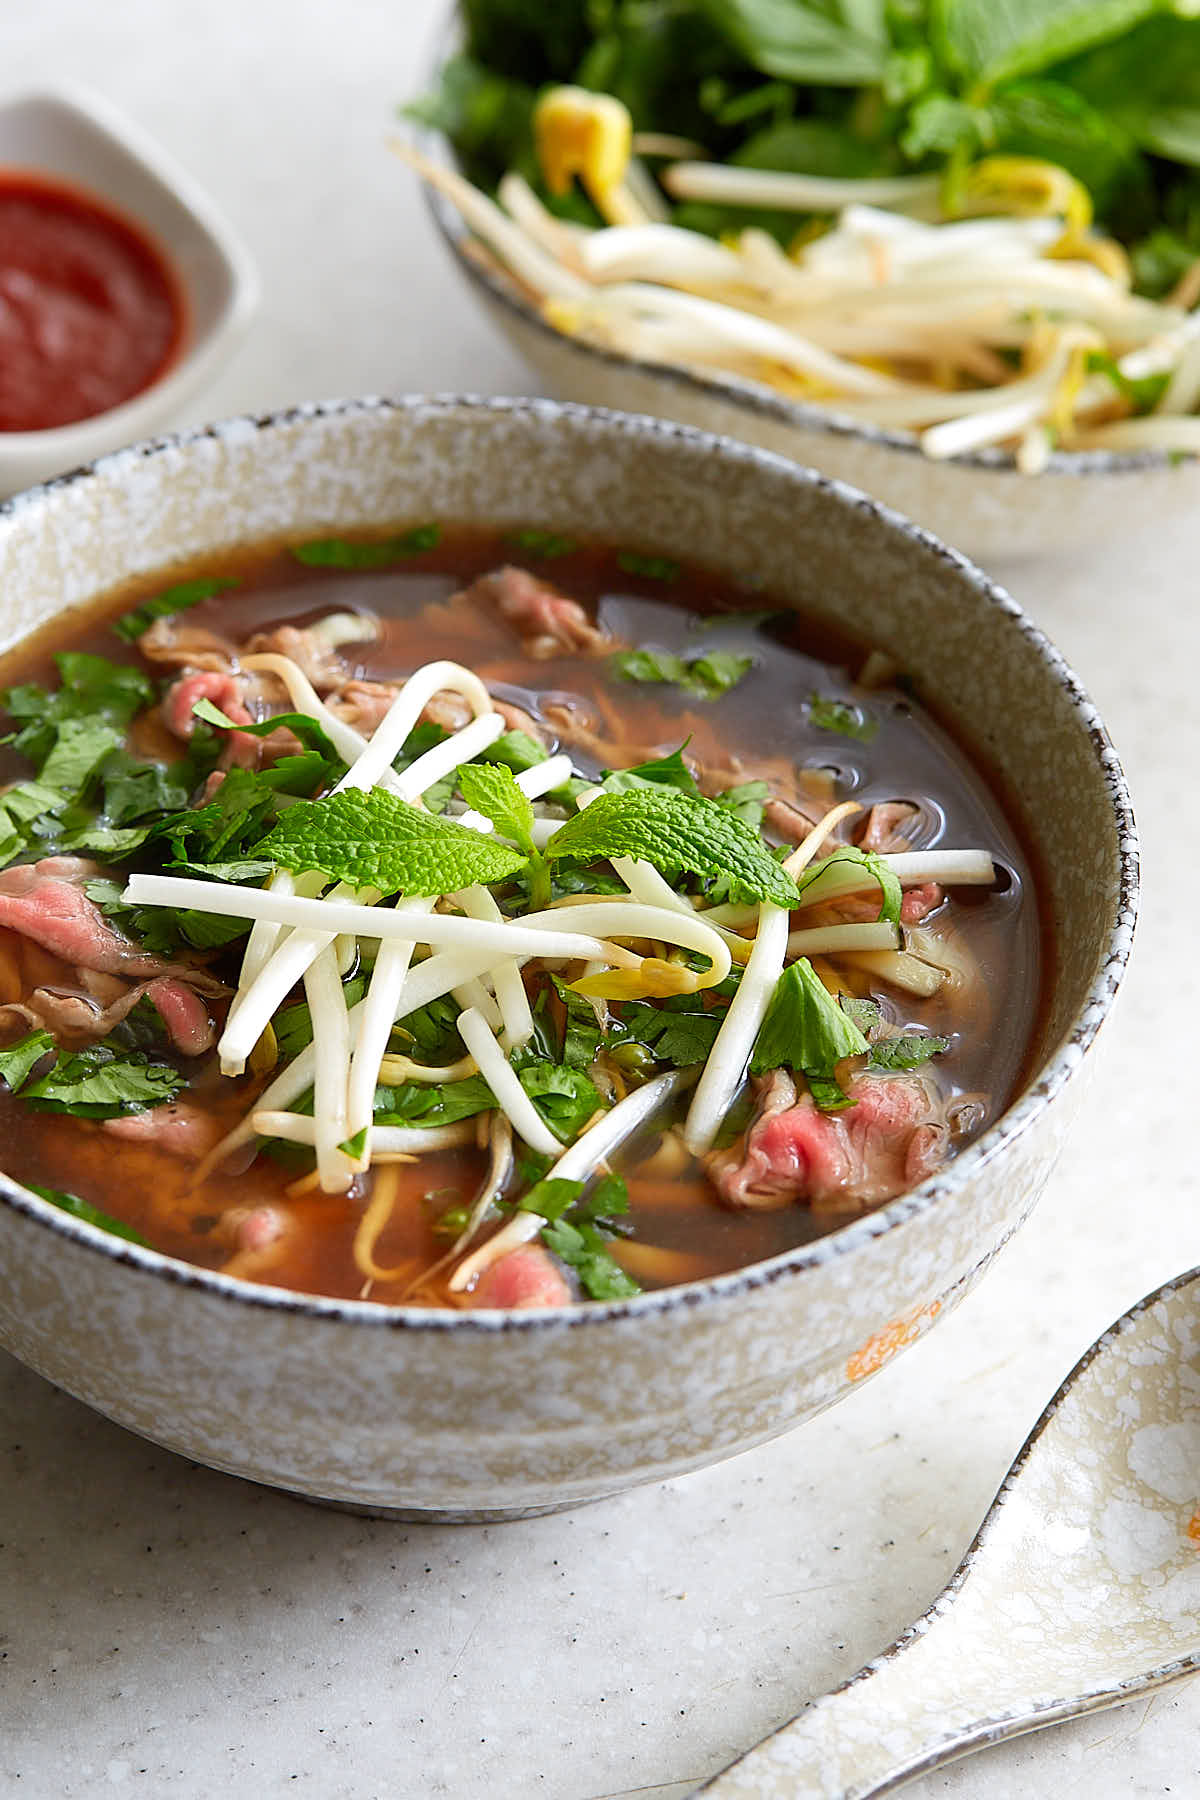 a side view of a bowl of beef pho garnished with bean sprouts and greens.